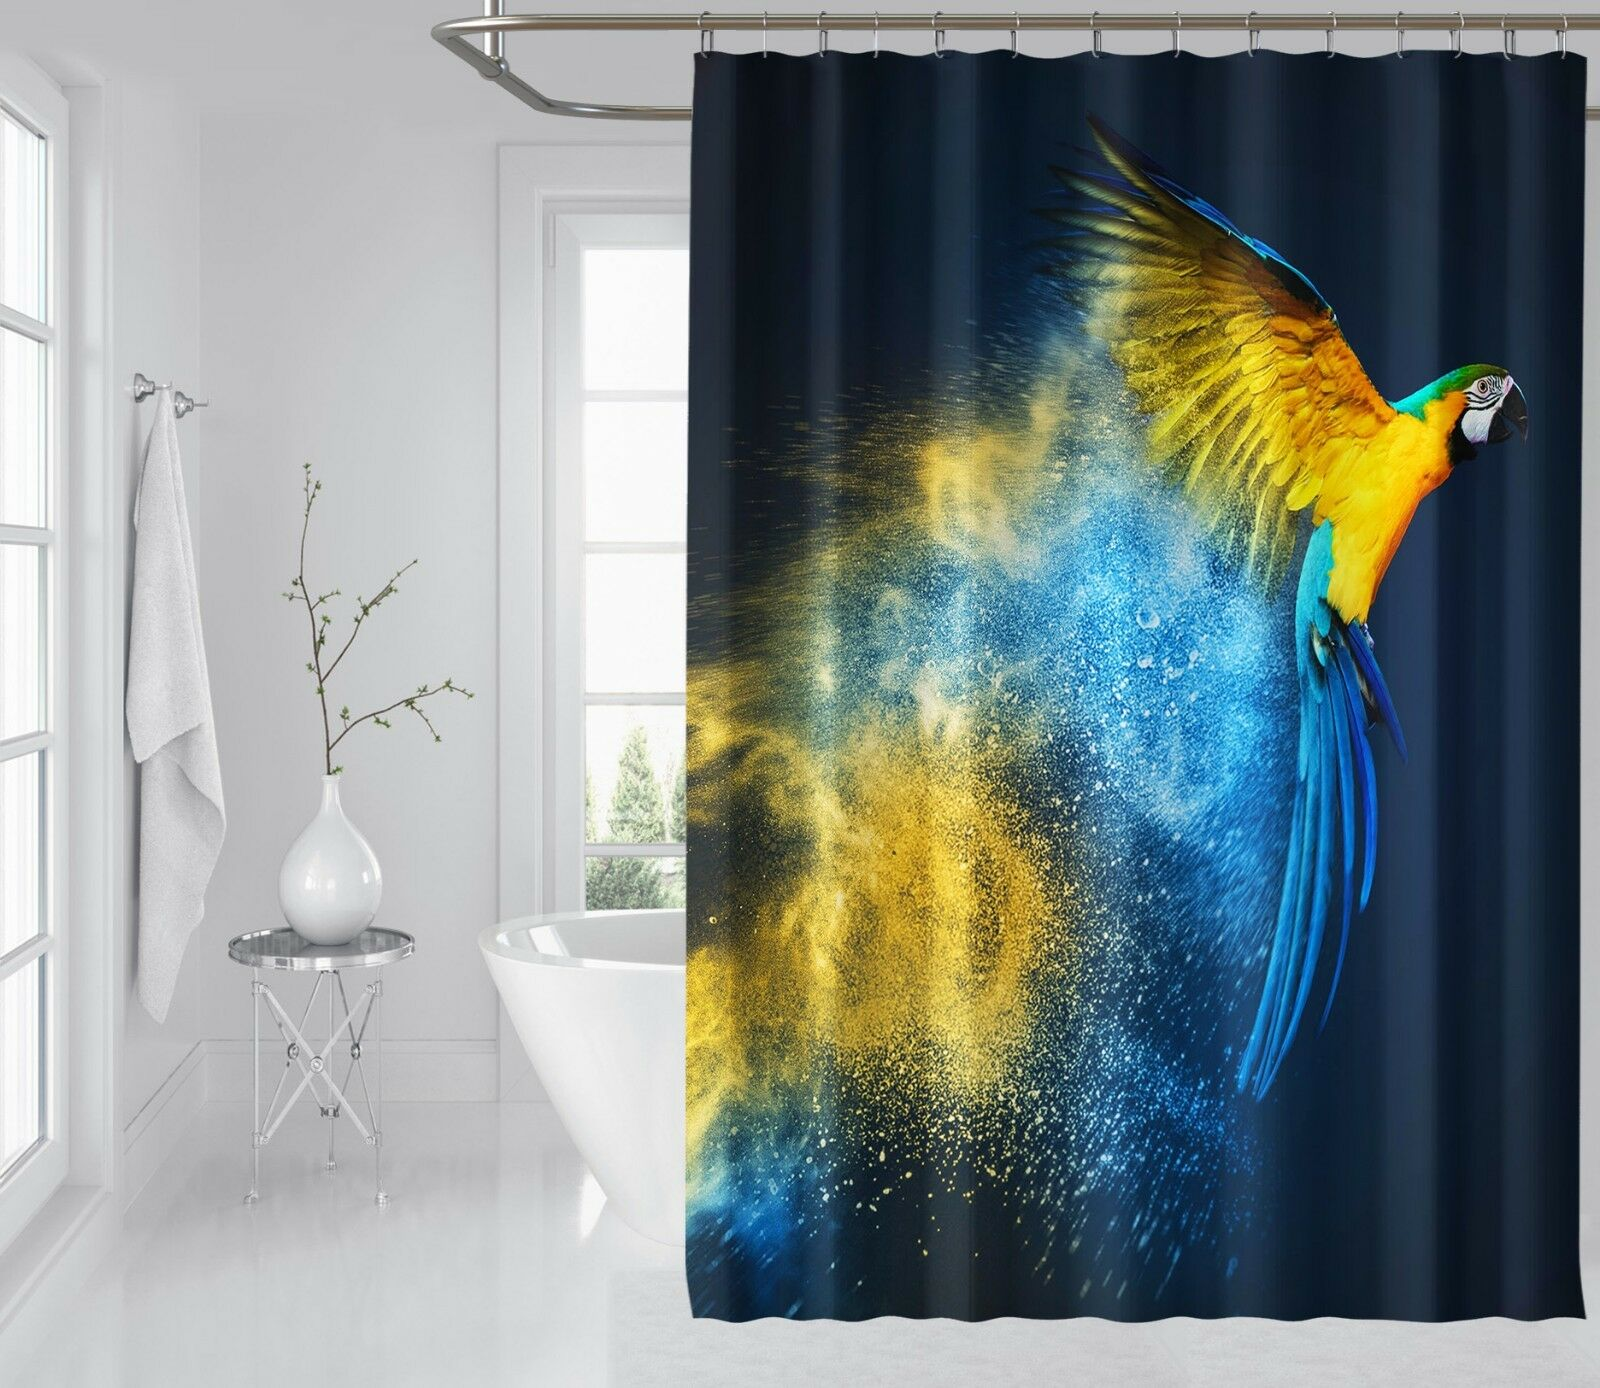 Home & Garden 3d Delphin Höhle 78 Duschvorhang Wasserdicht Faser Bad Daheim Windows Toilette Buy One Get One Free